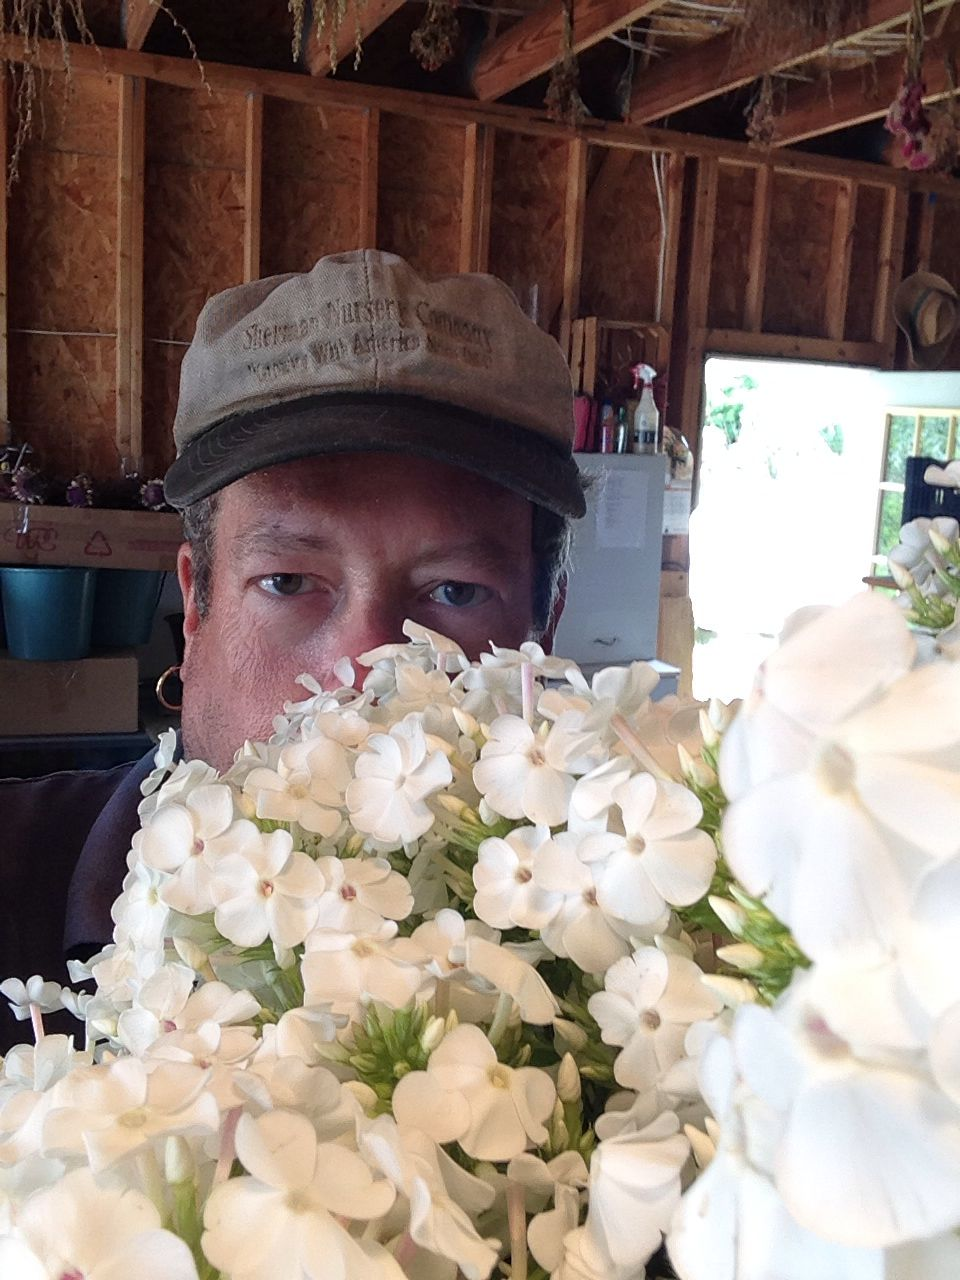 Phlox david white cut flowers pinterest cut flowers cut flowers phlox david white mightylinksfo